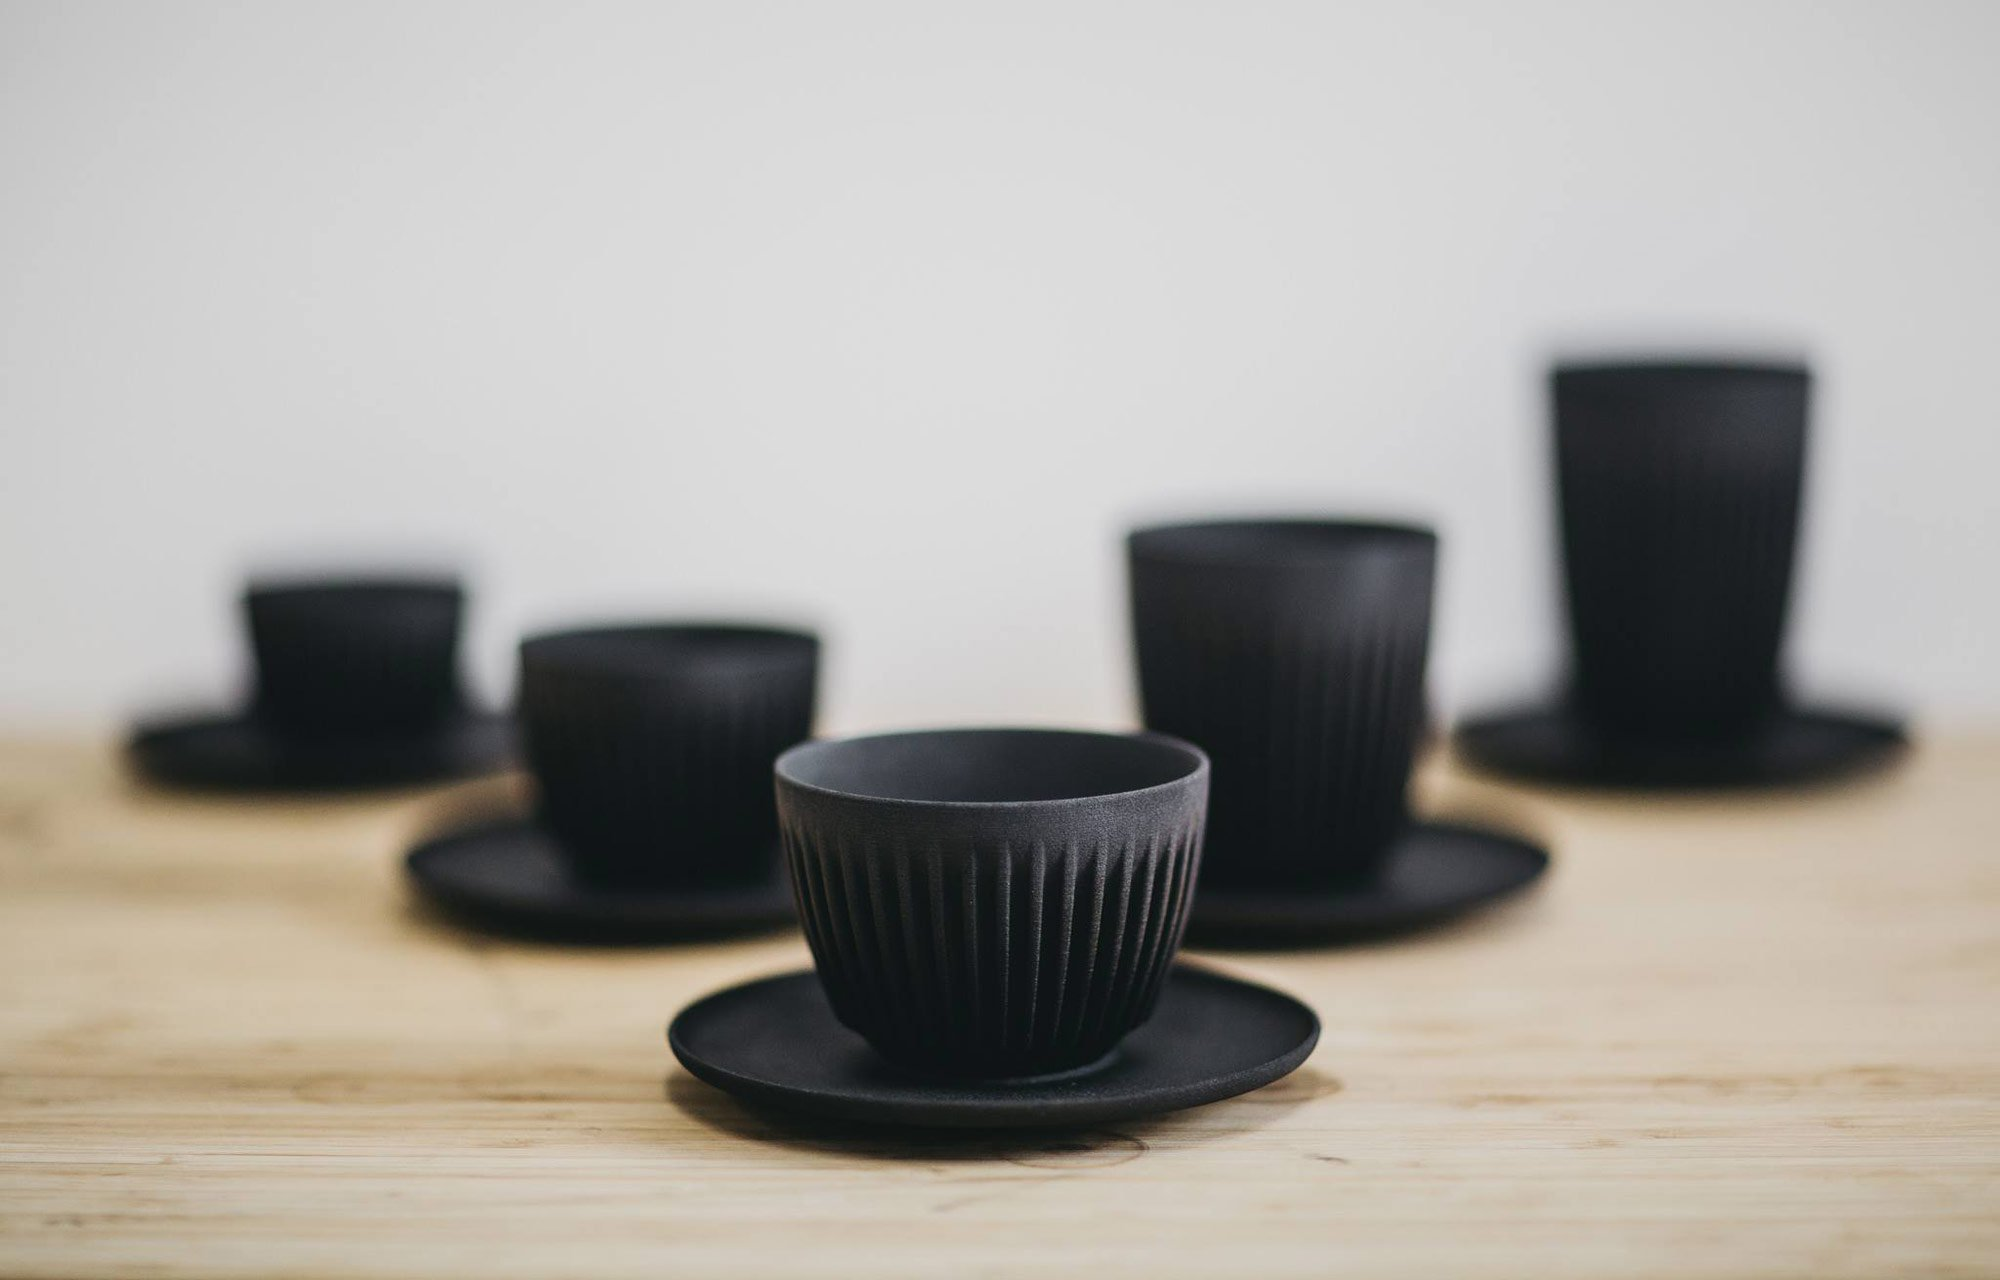 Meet the designers working to create a more sustainable coffee cup